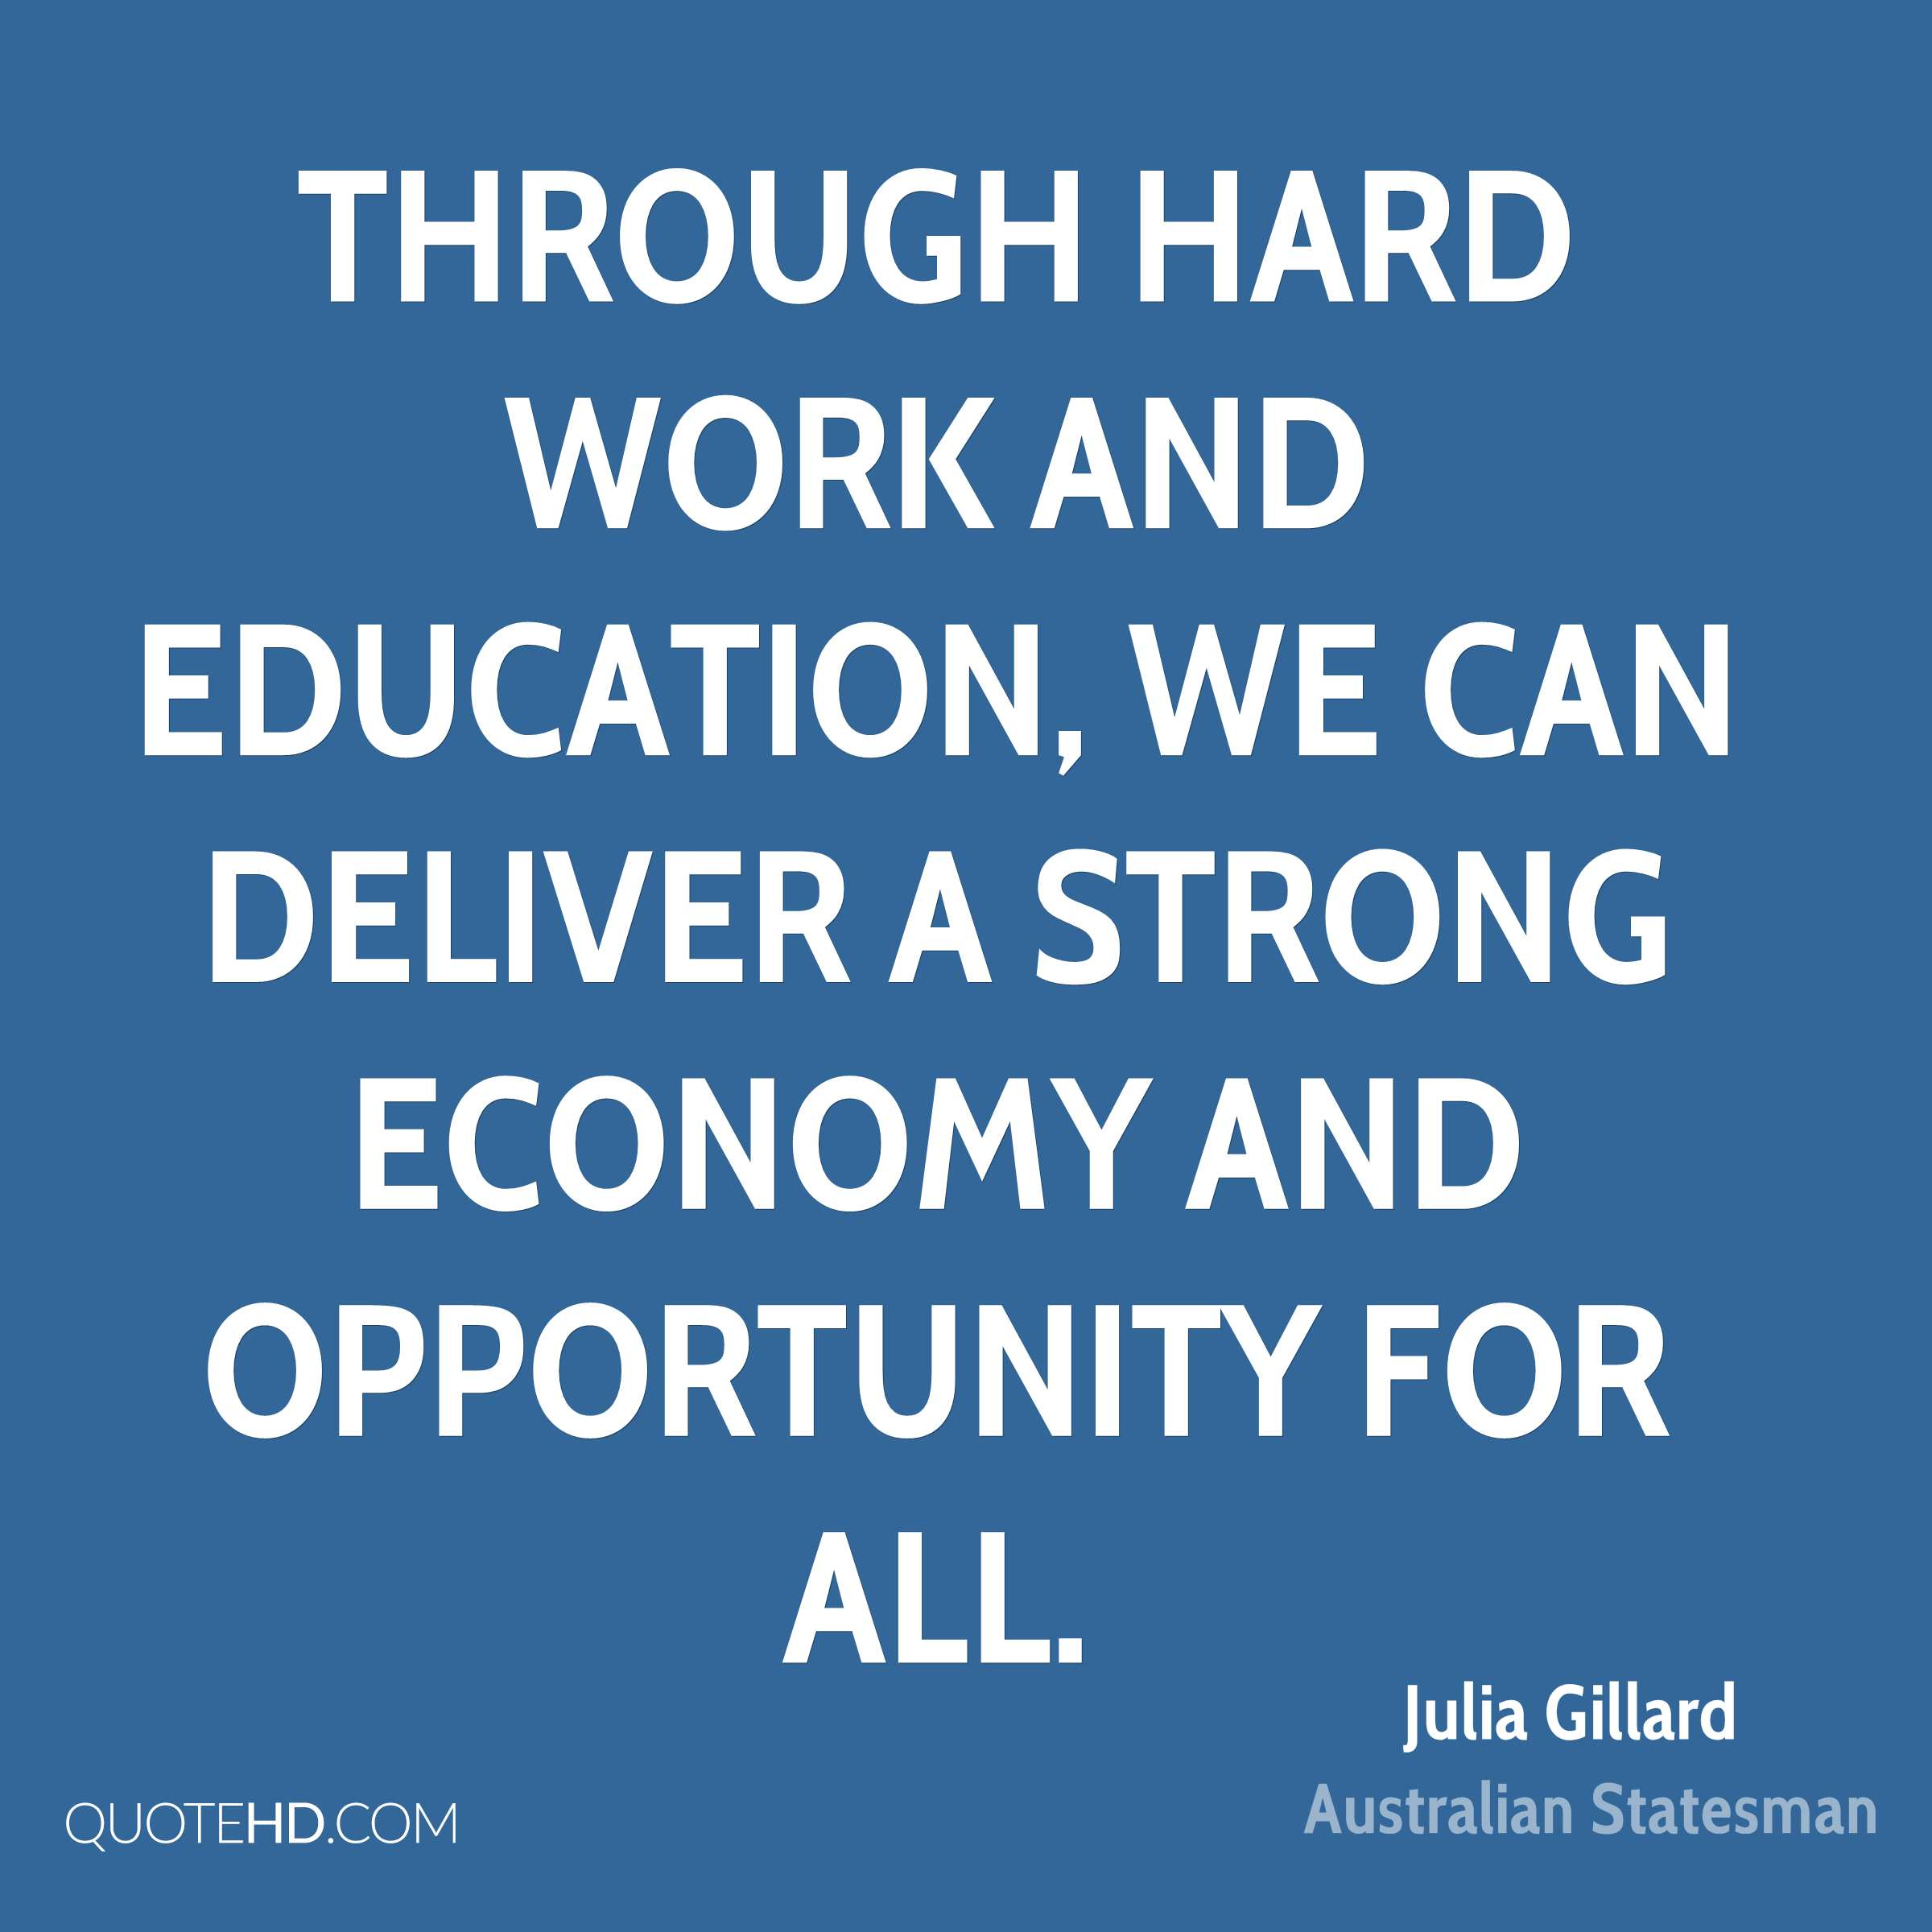 Through hard work and education, we can deliver a strong economy and opportunity for all.